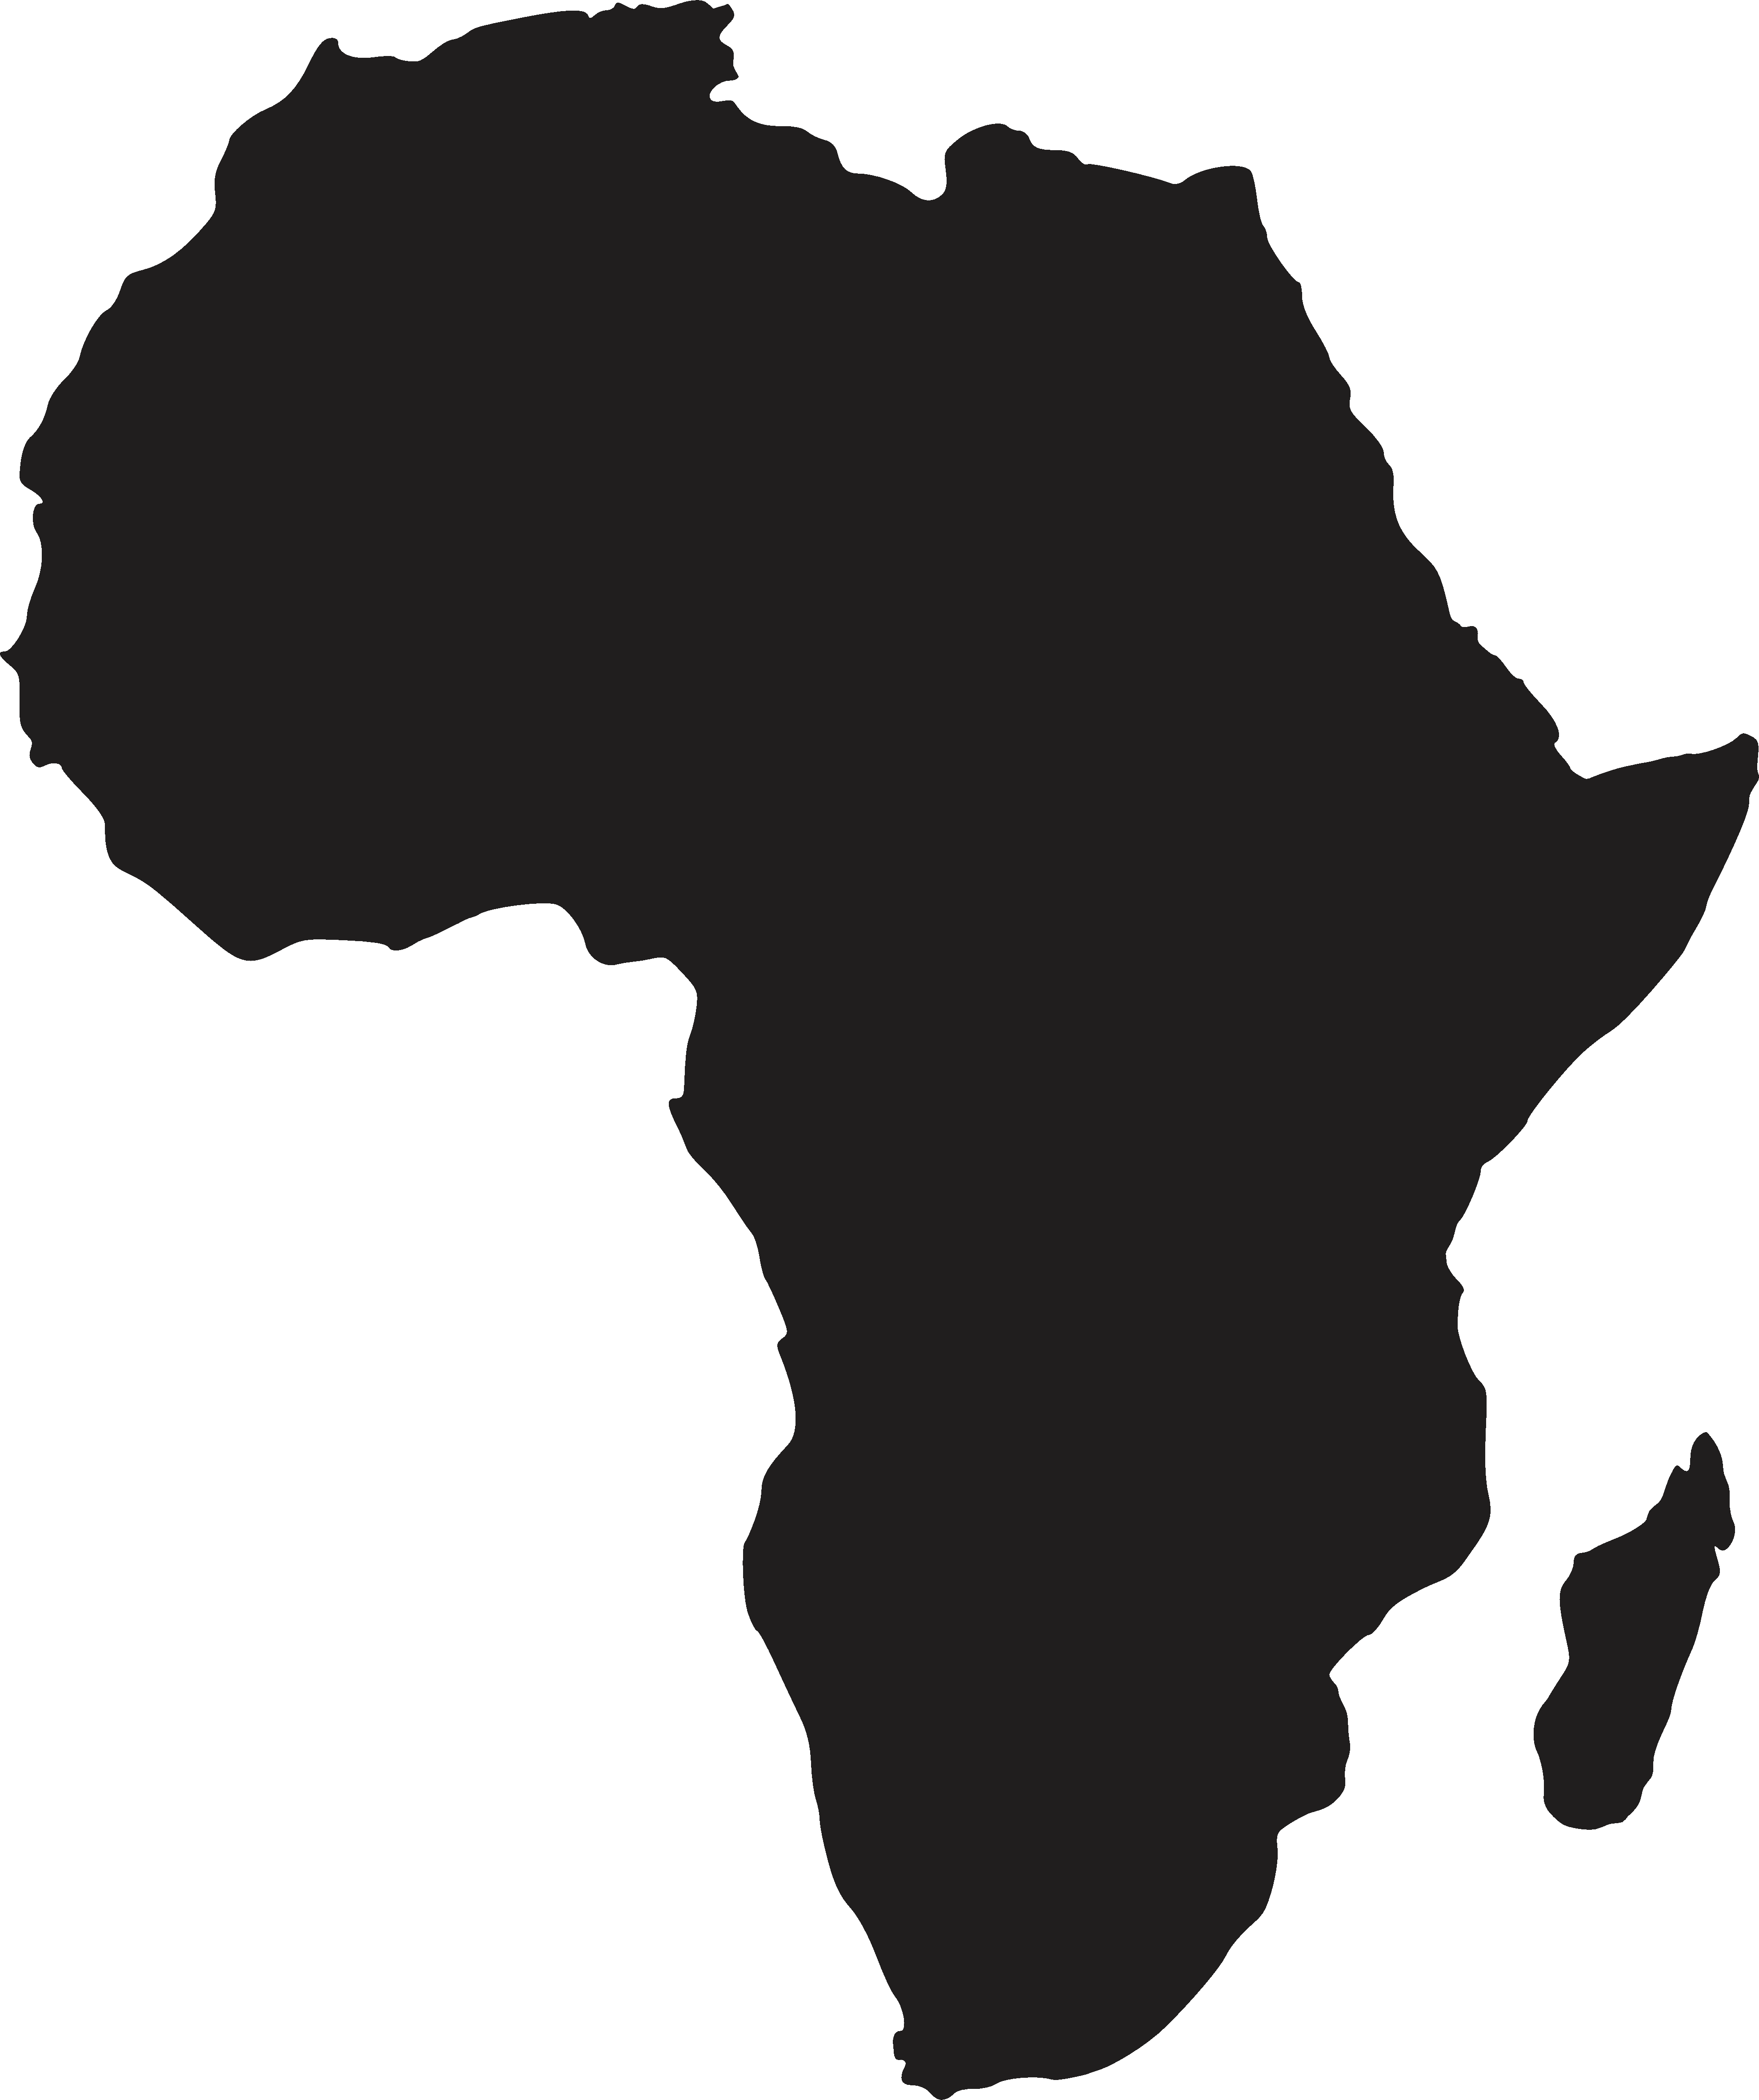 Africa silhouette png. Globe map computer icons